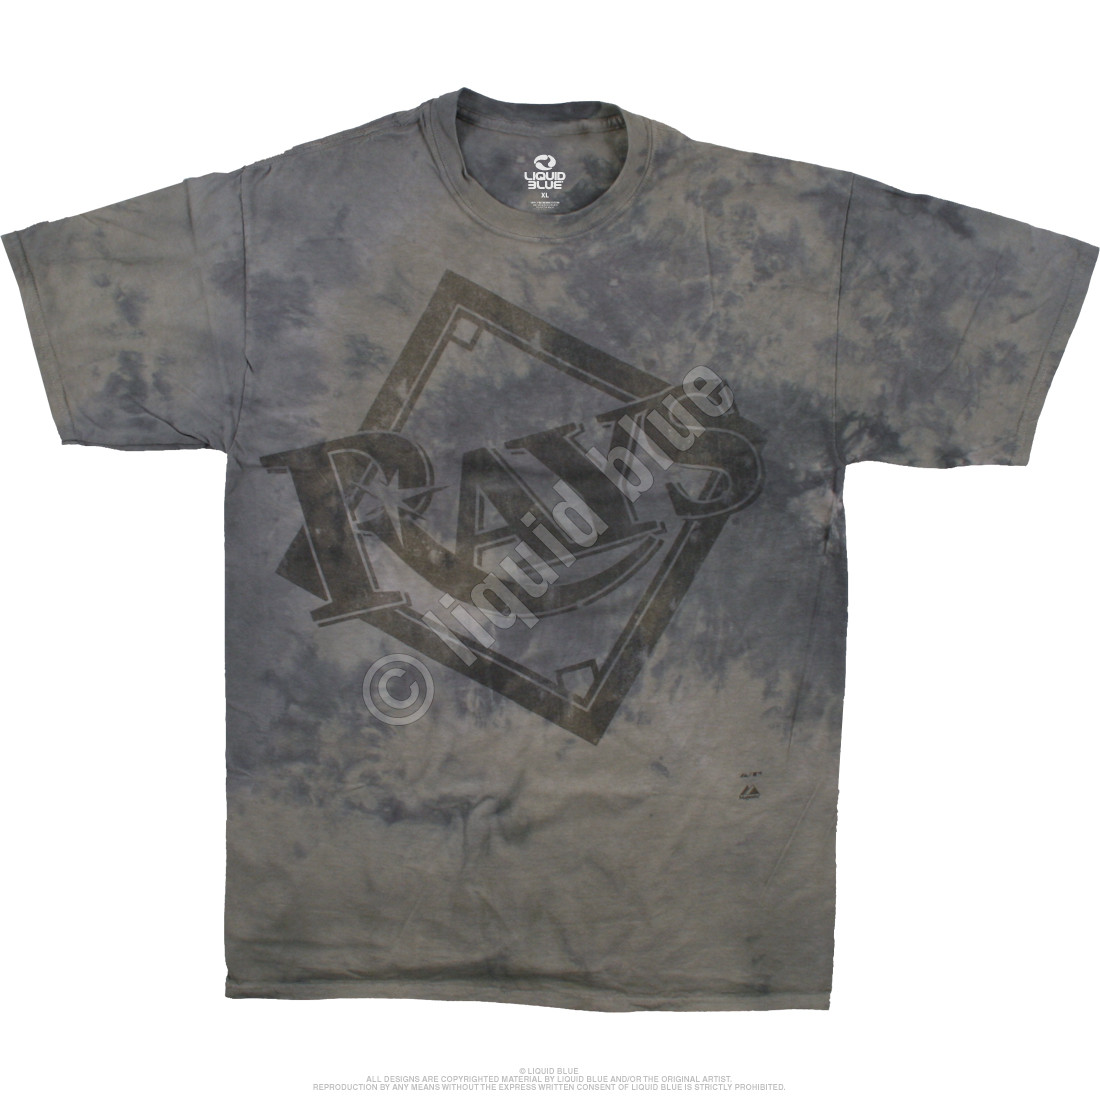 Tampa Bay Rays Tonal Tie-Dye T-Shirt - Clearance 30% OFF